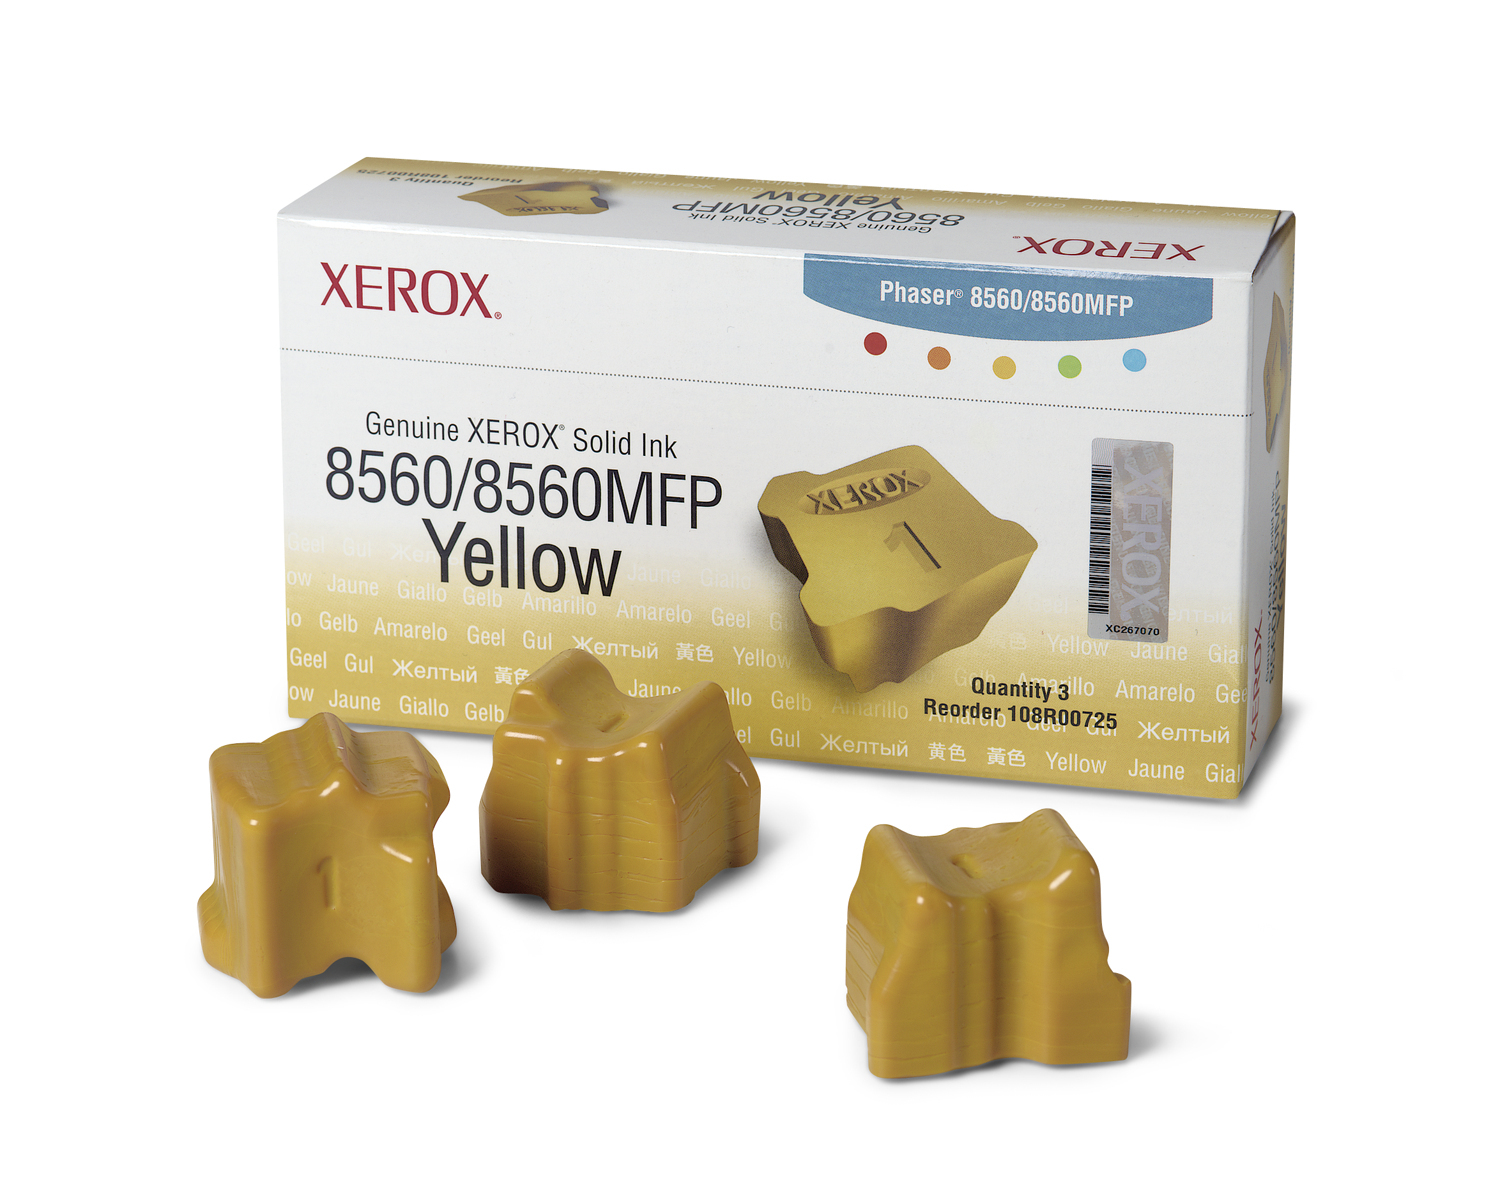 Xerox Genuine Solid Ink 8560MFP/8560 Yellow (3,400 Pages)